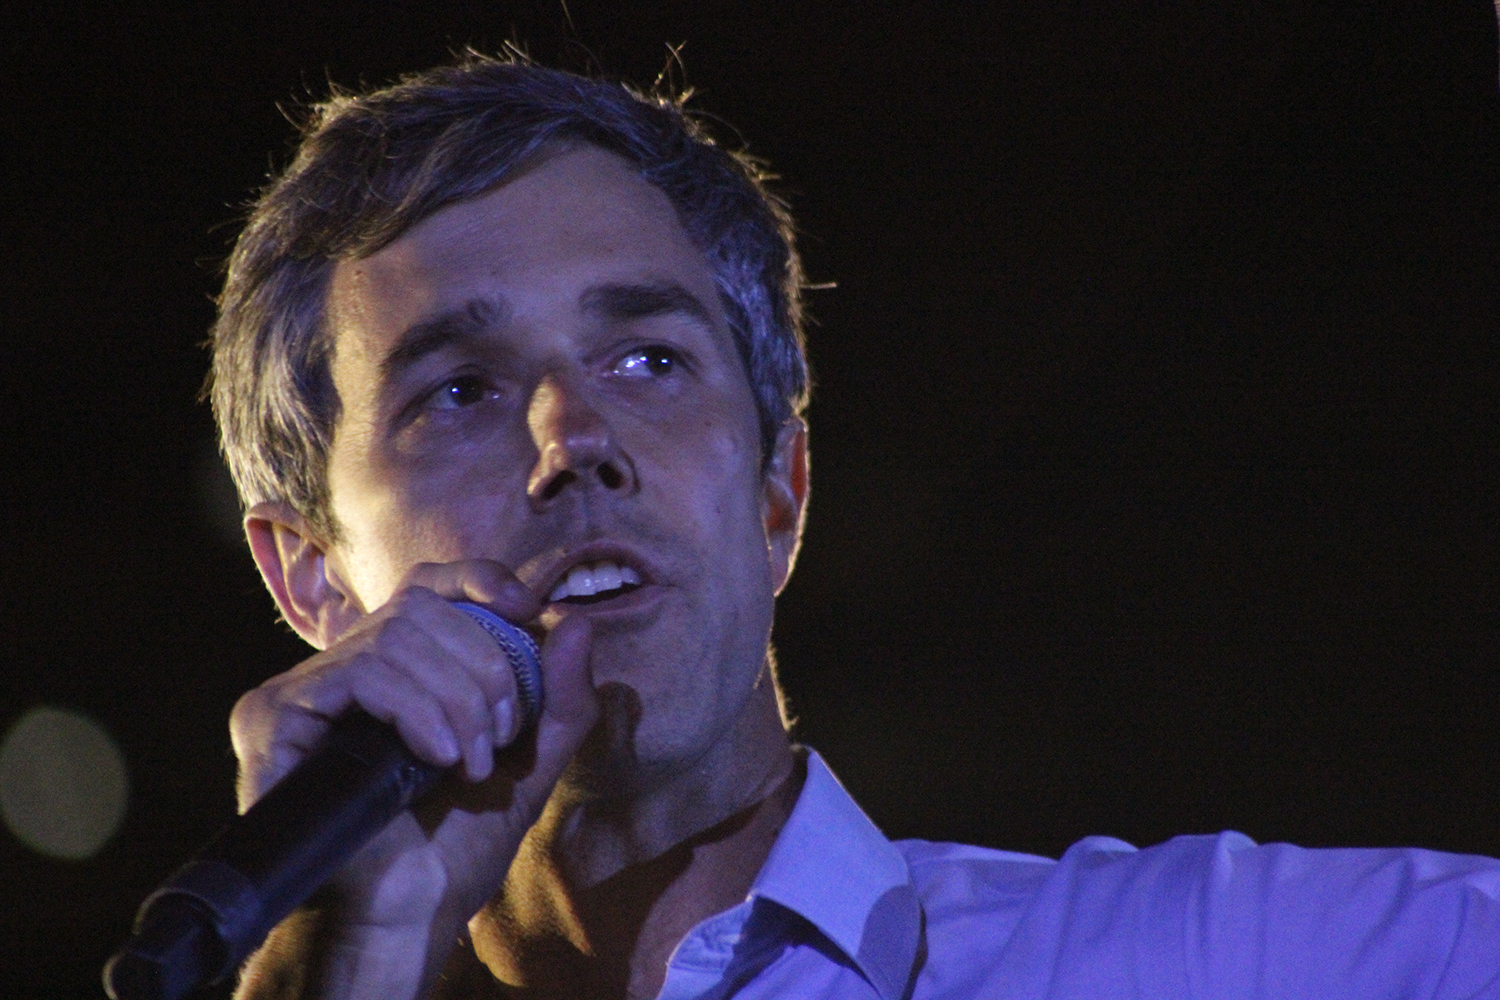 Presidential candidate Beto O'Rourke speaks at his rally in downtown Austin on Saturday, March 30. O'Rourke was preceded by speeches from Mayor Steve Adler and Rep. Gina Hinojosa.